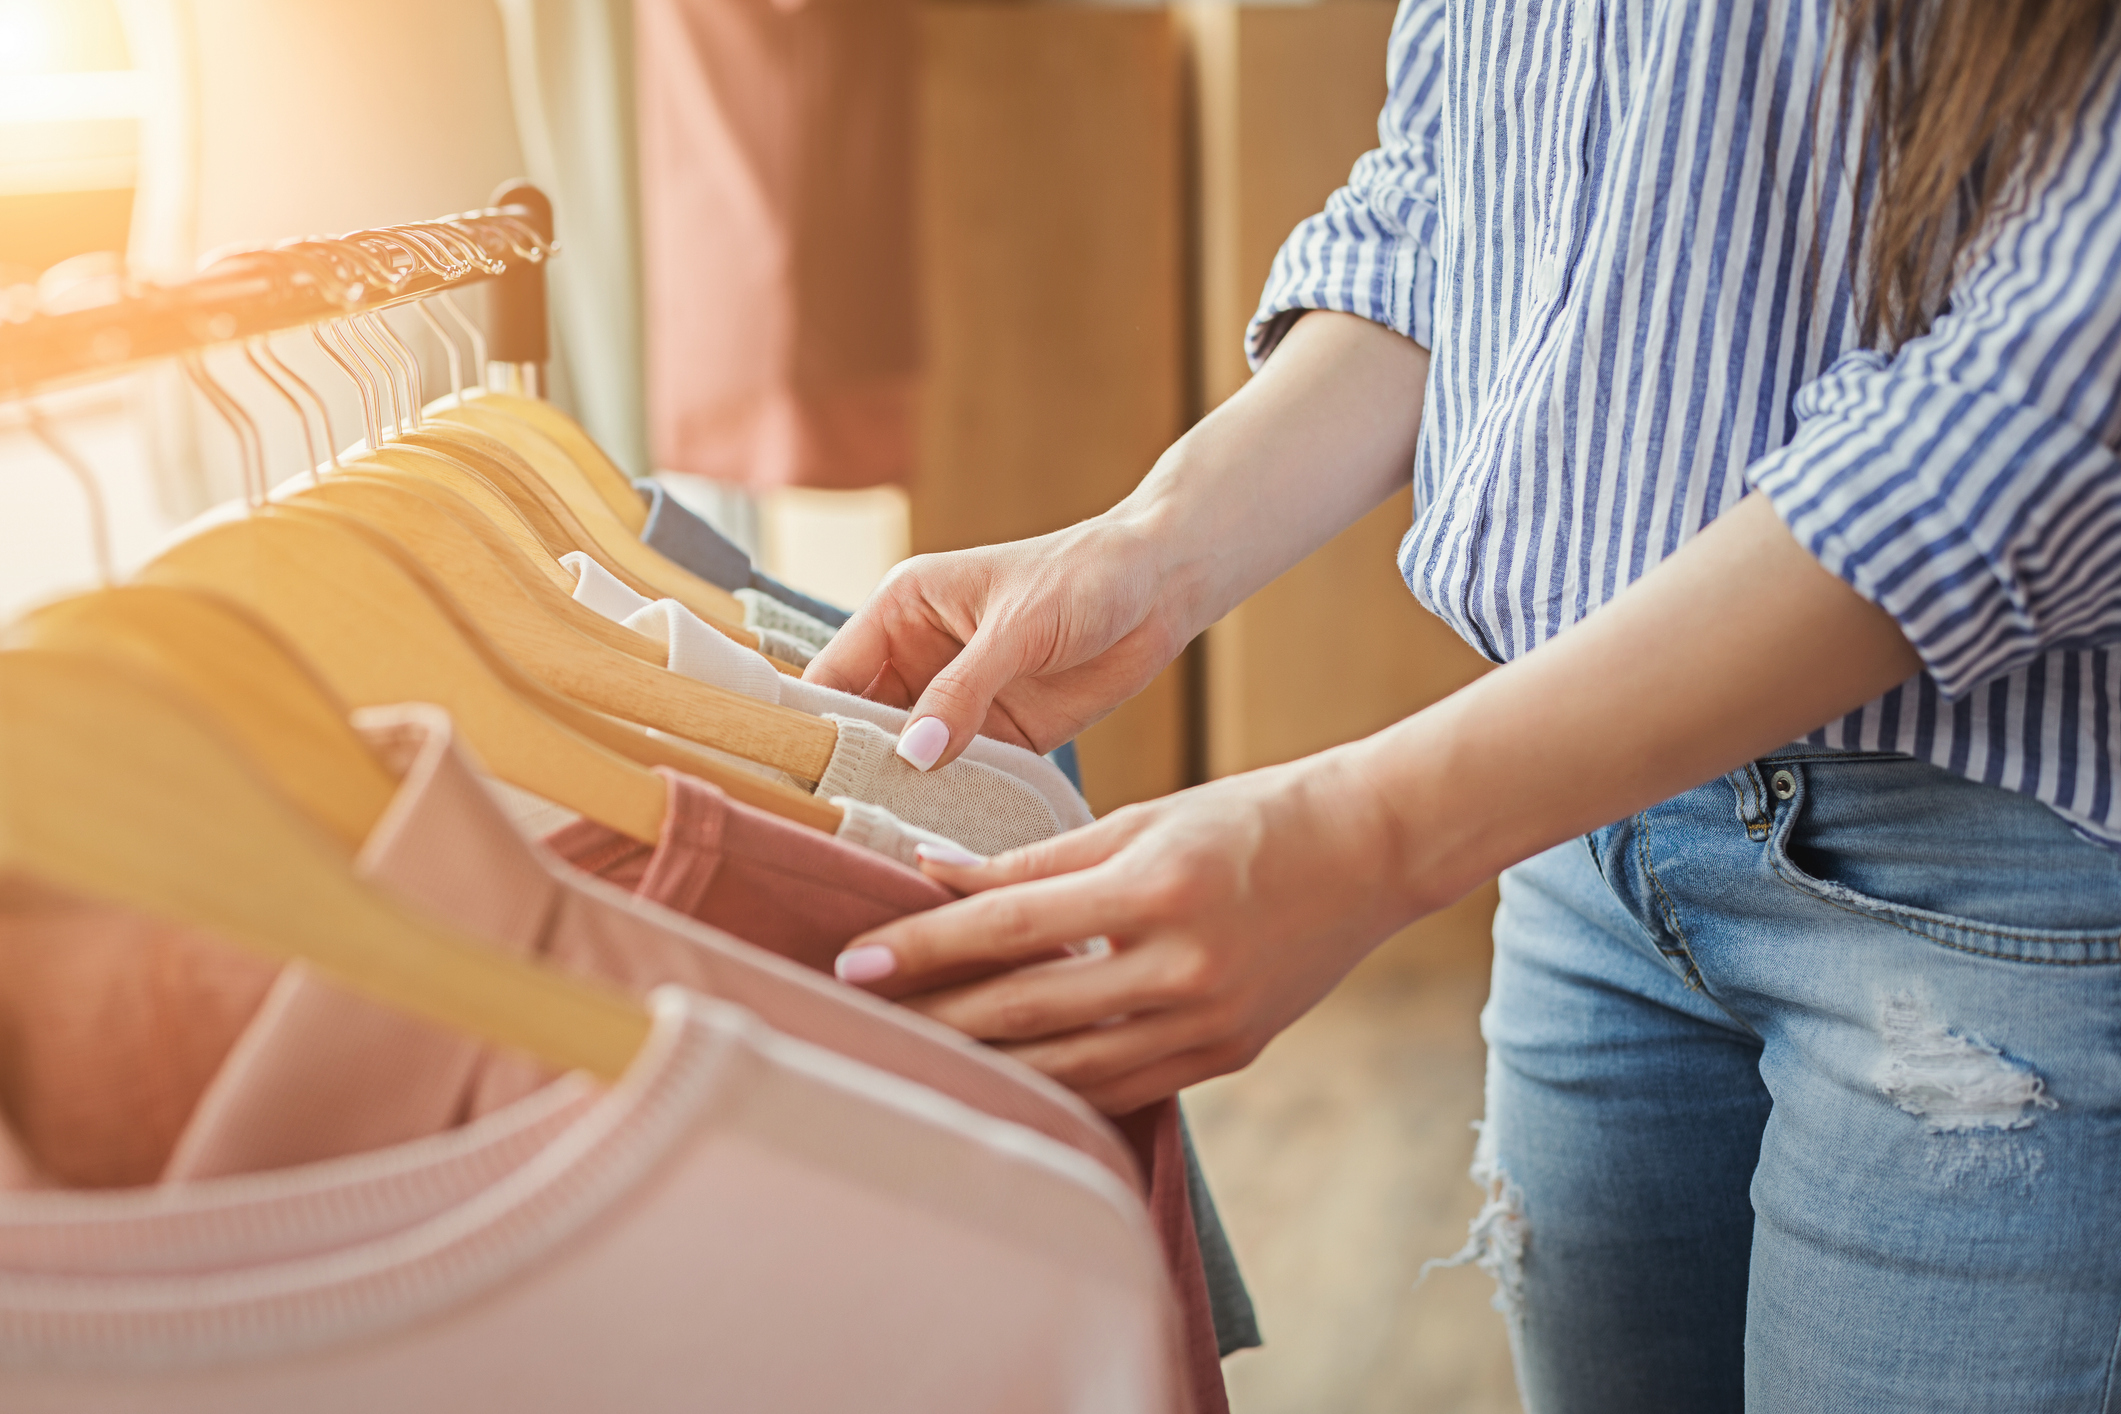 DDR: the technology to meet the demand of fashion consumers